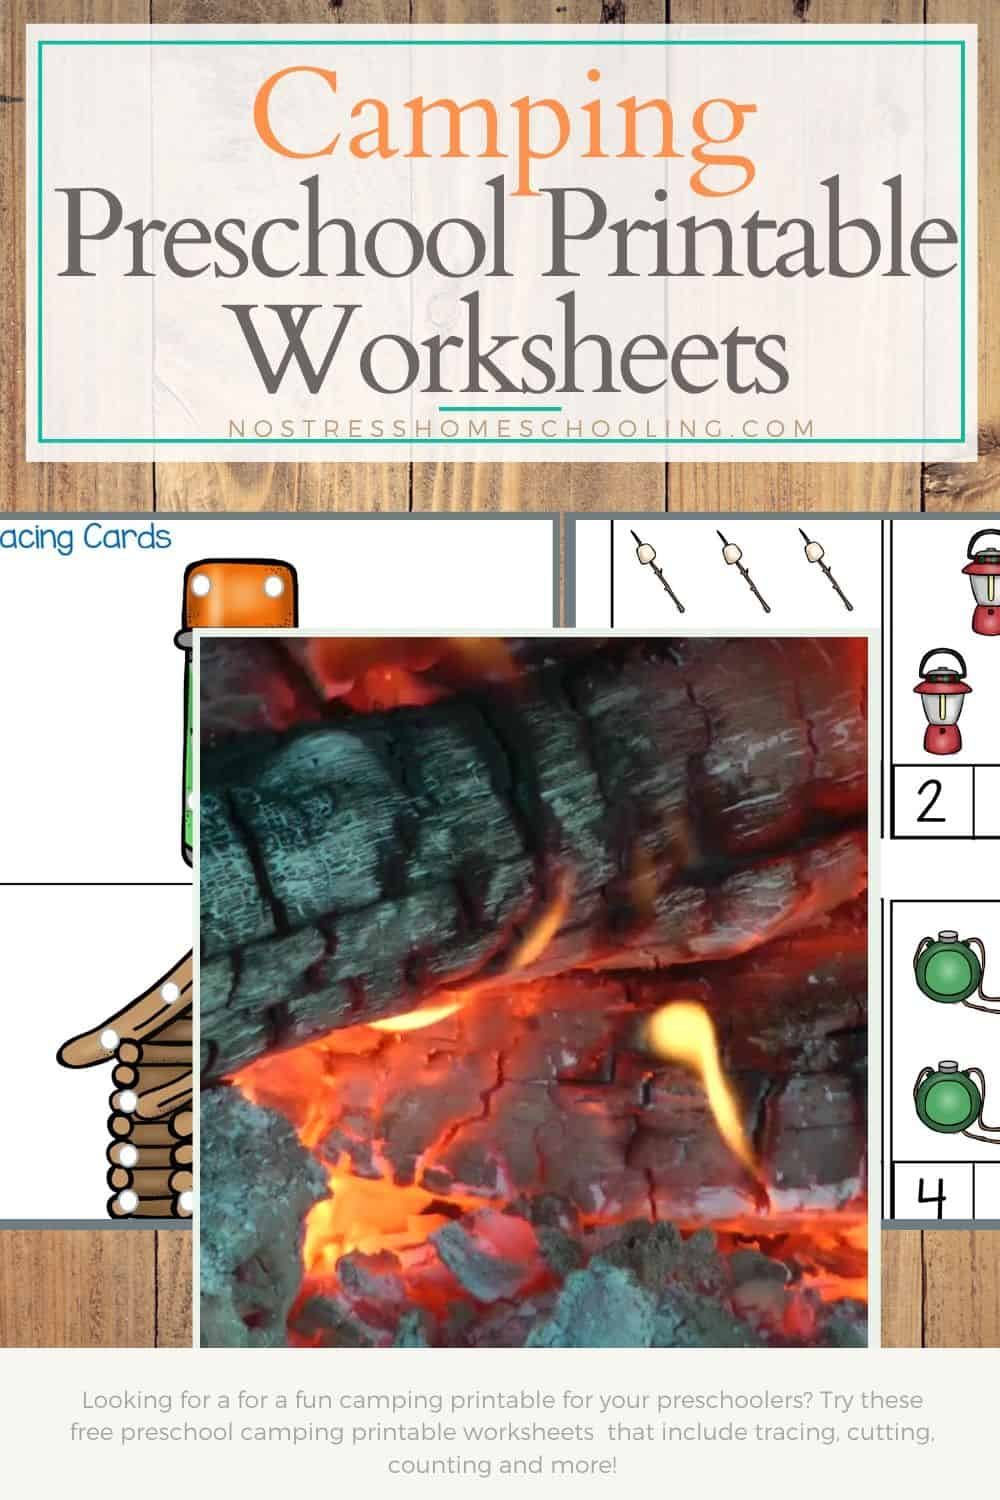 Looking for a for a fun camping printable for your preschoolers? Try these free preschool camping printable worksheets that include tracing, cutting, counting and more!